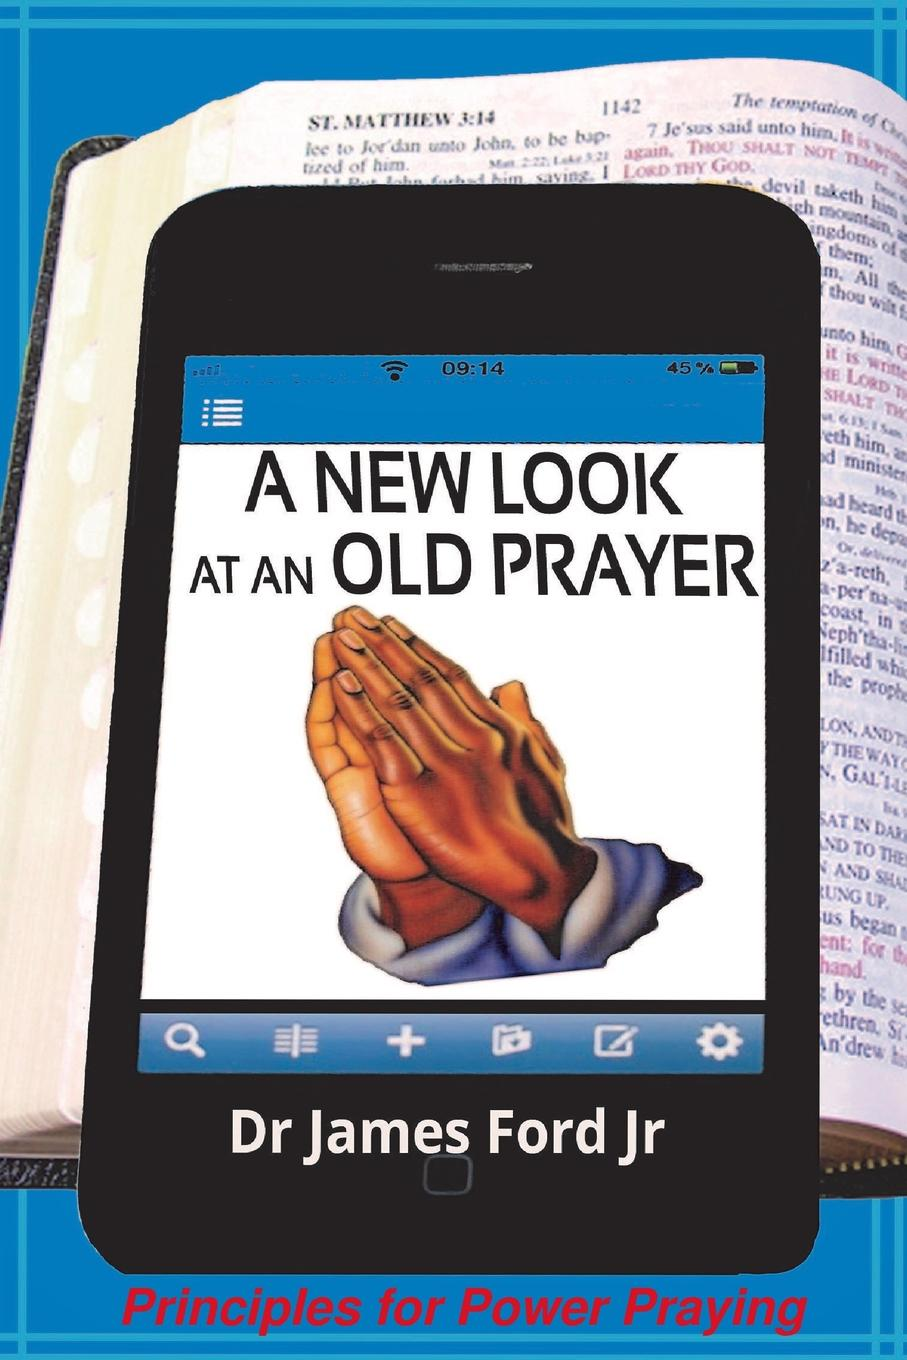 DR. JAMES FORD JR A NEW LOOK AT AN OLD PRAYER